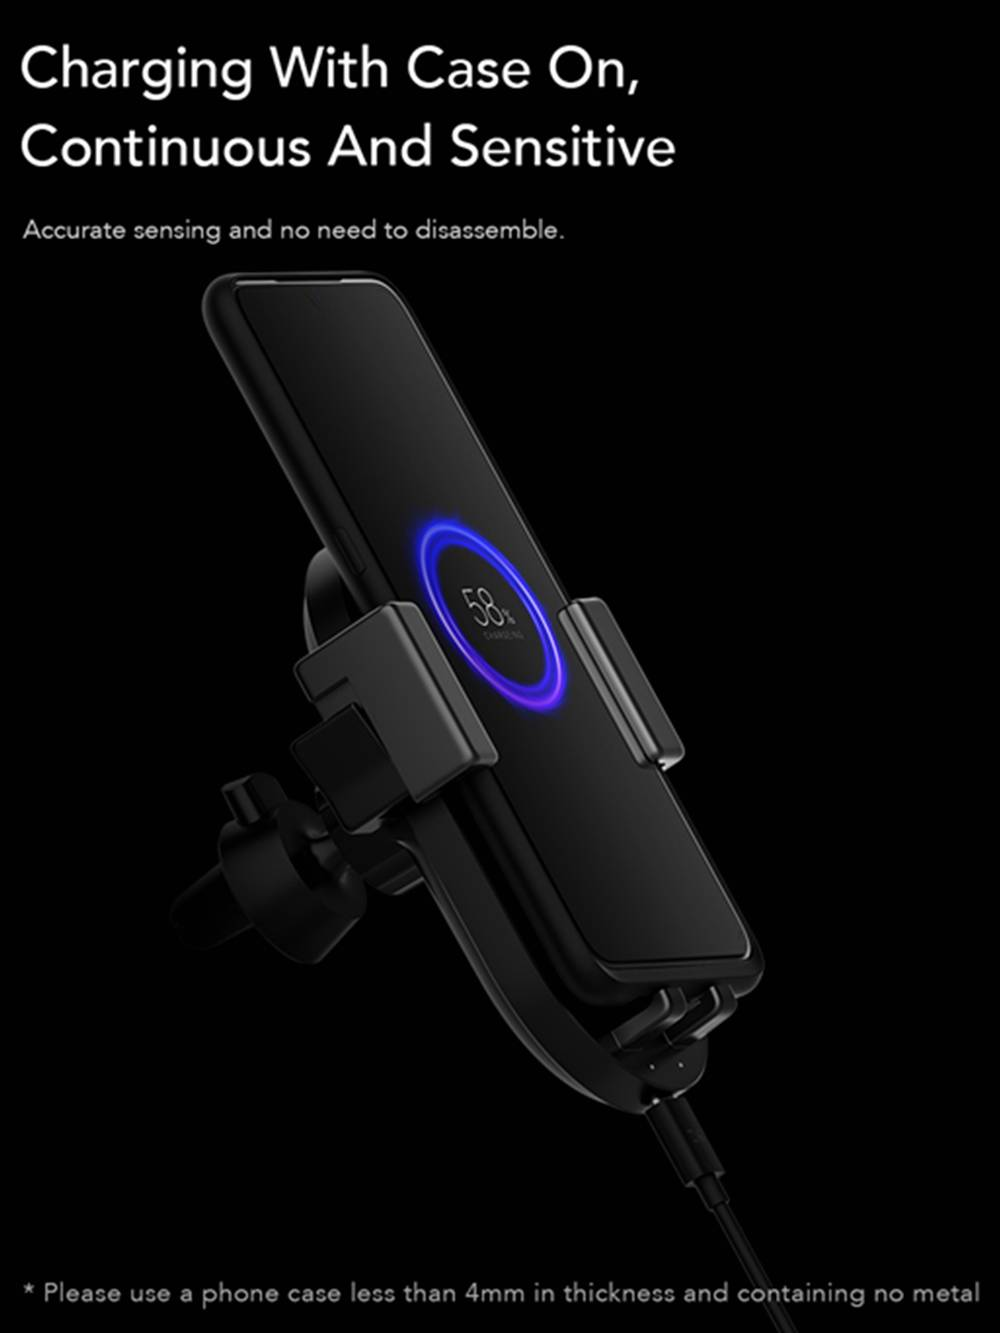 ZMI WCJ10 20W Wireless Car Fast Charger 360 Degree Rotating With Phone Holder For Mobile Phone - Black